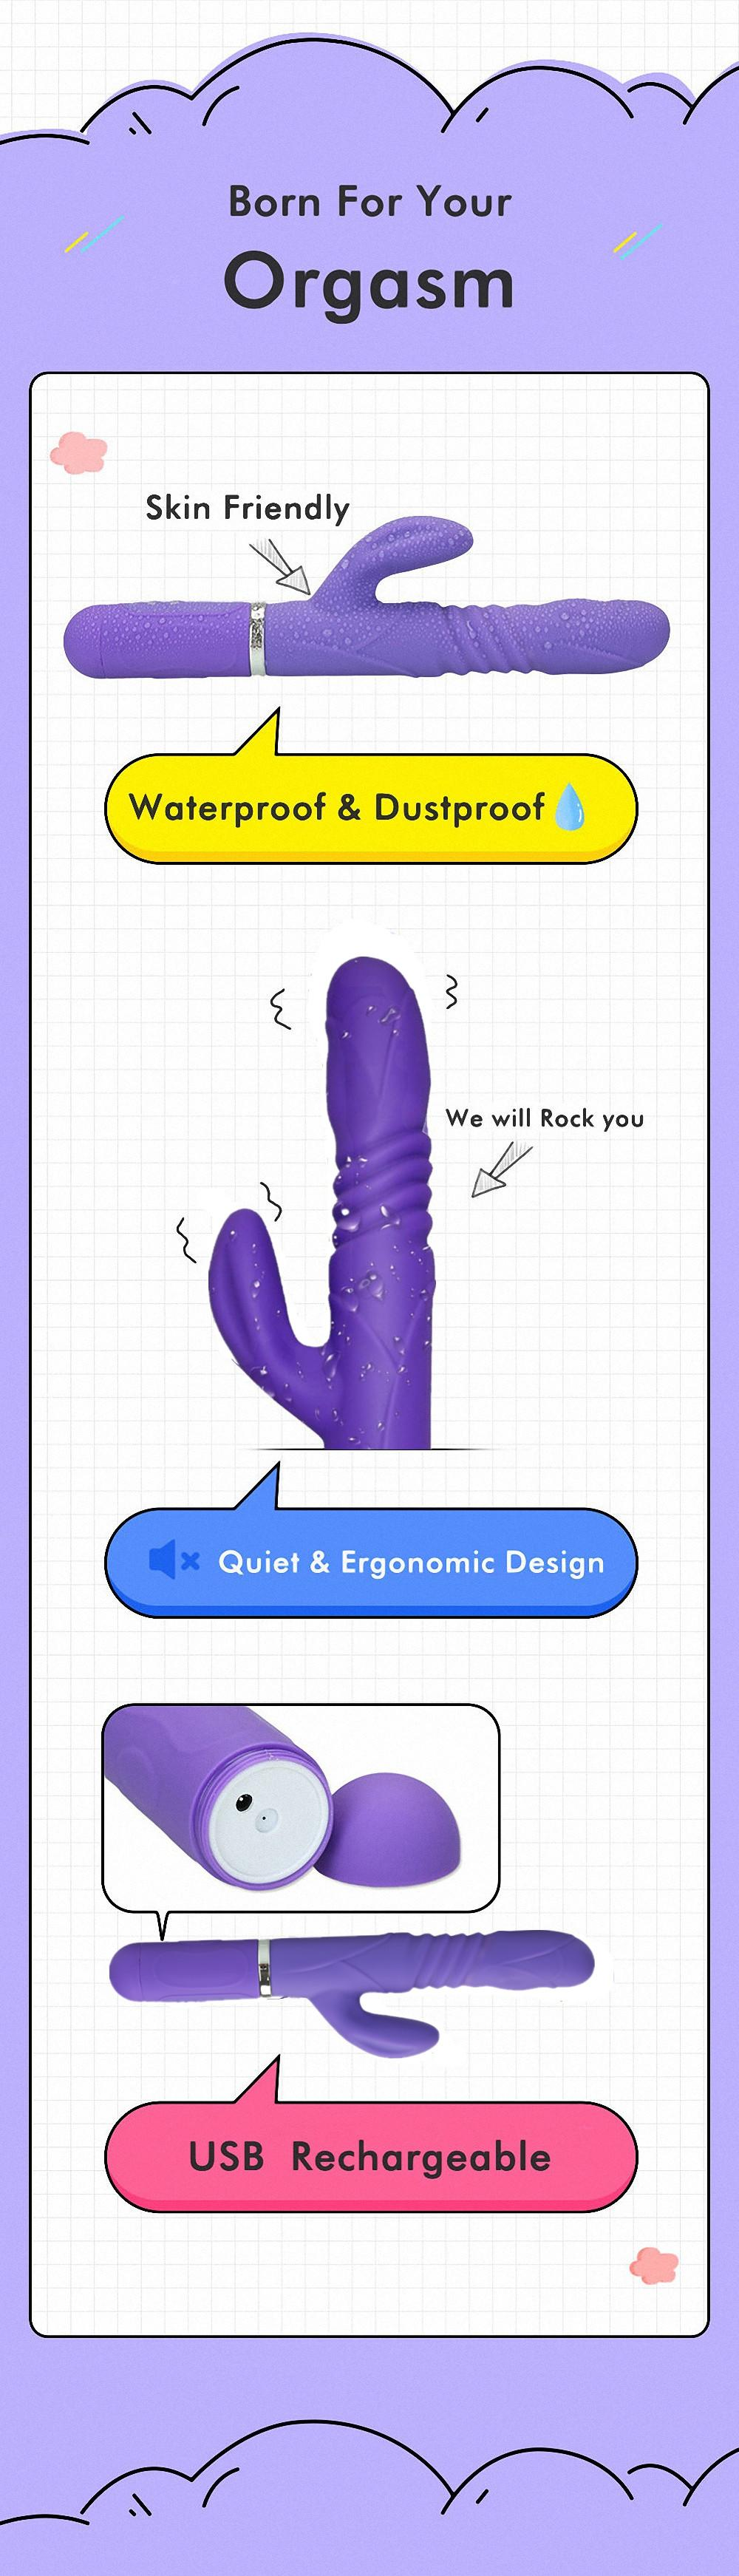 dream-king-rabbit-12-function-waterproof-silicone-thrusting-rabb.jpg